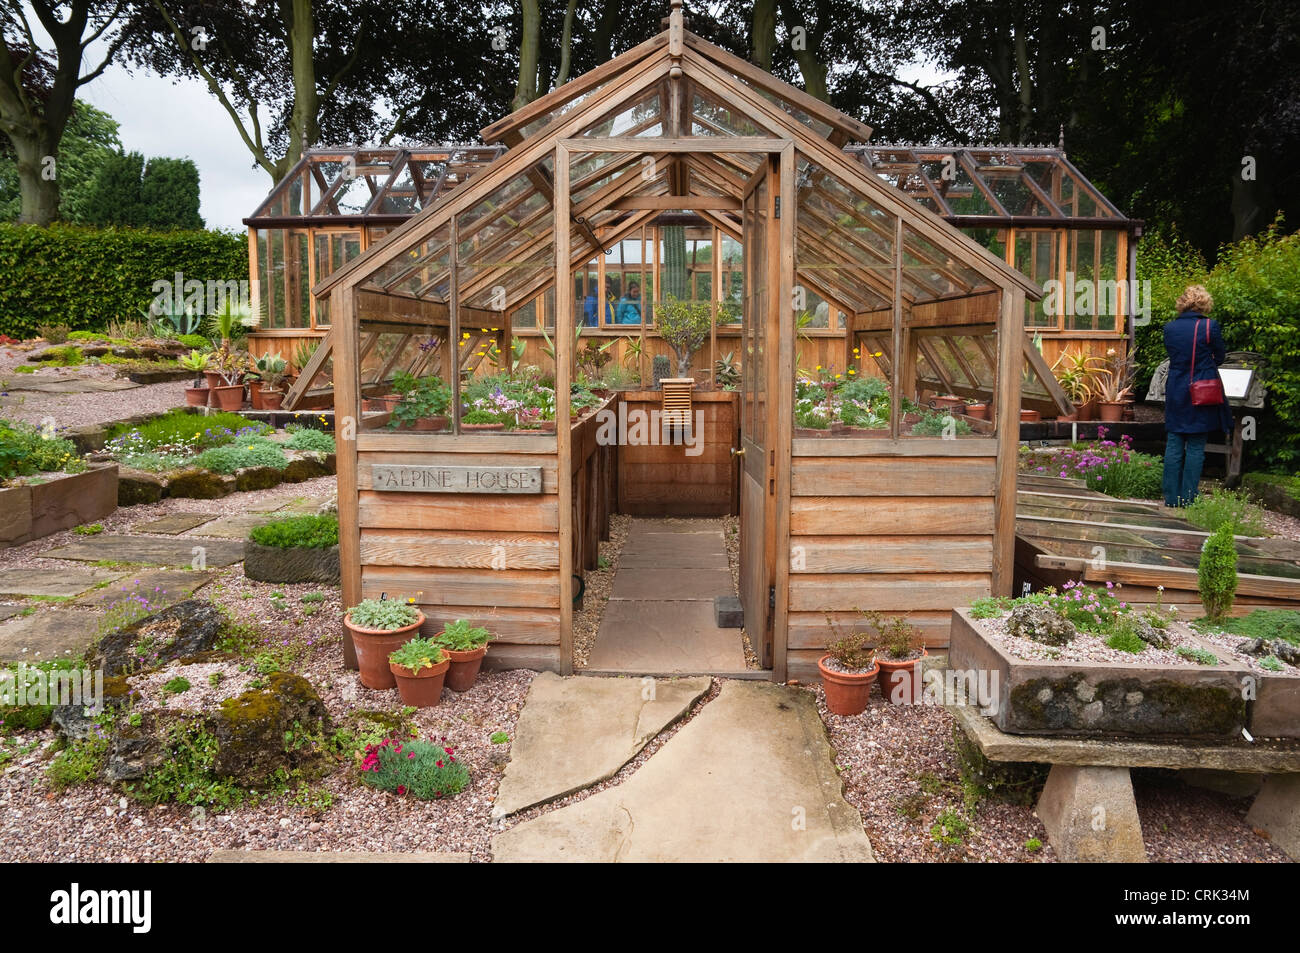 The Alpine House - a traditional wooden greenhouse, surrounded by a variety of sinks, and pots - containing alpine - Stock Image